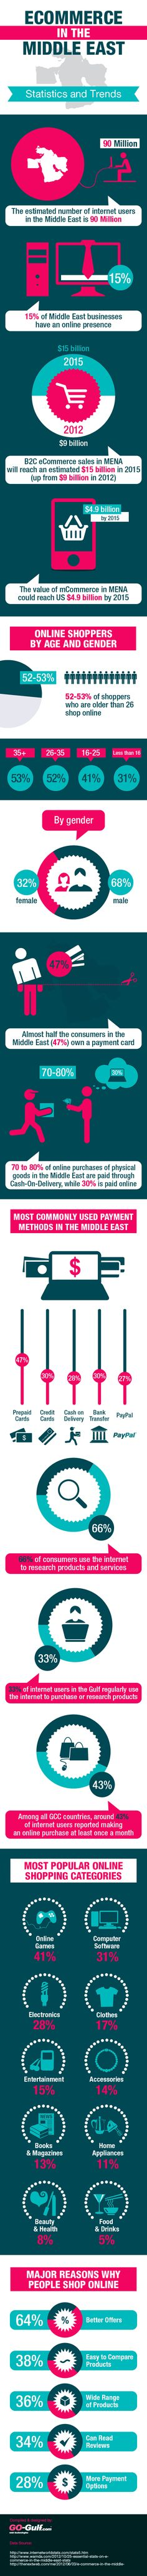 Ecommerce in the Middle East - Infographic